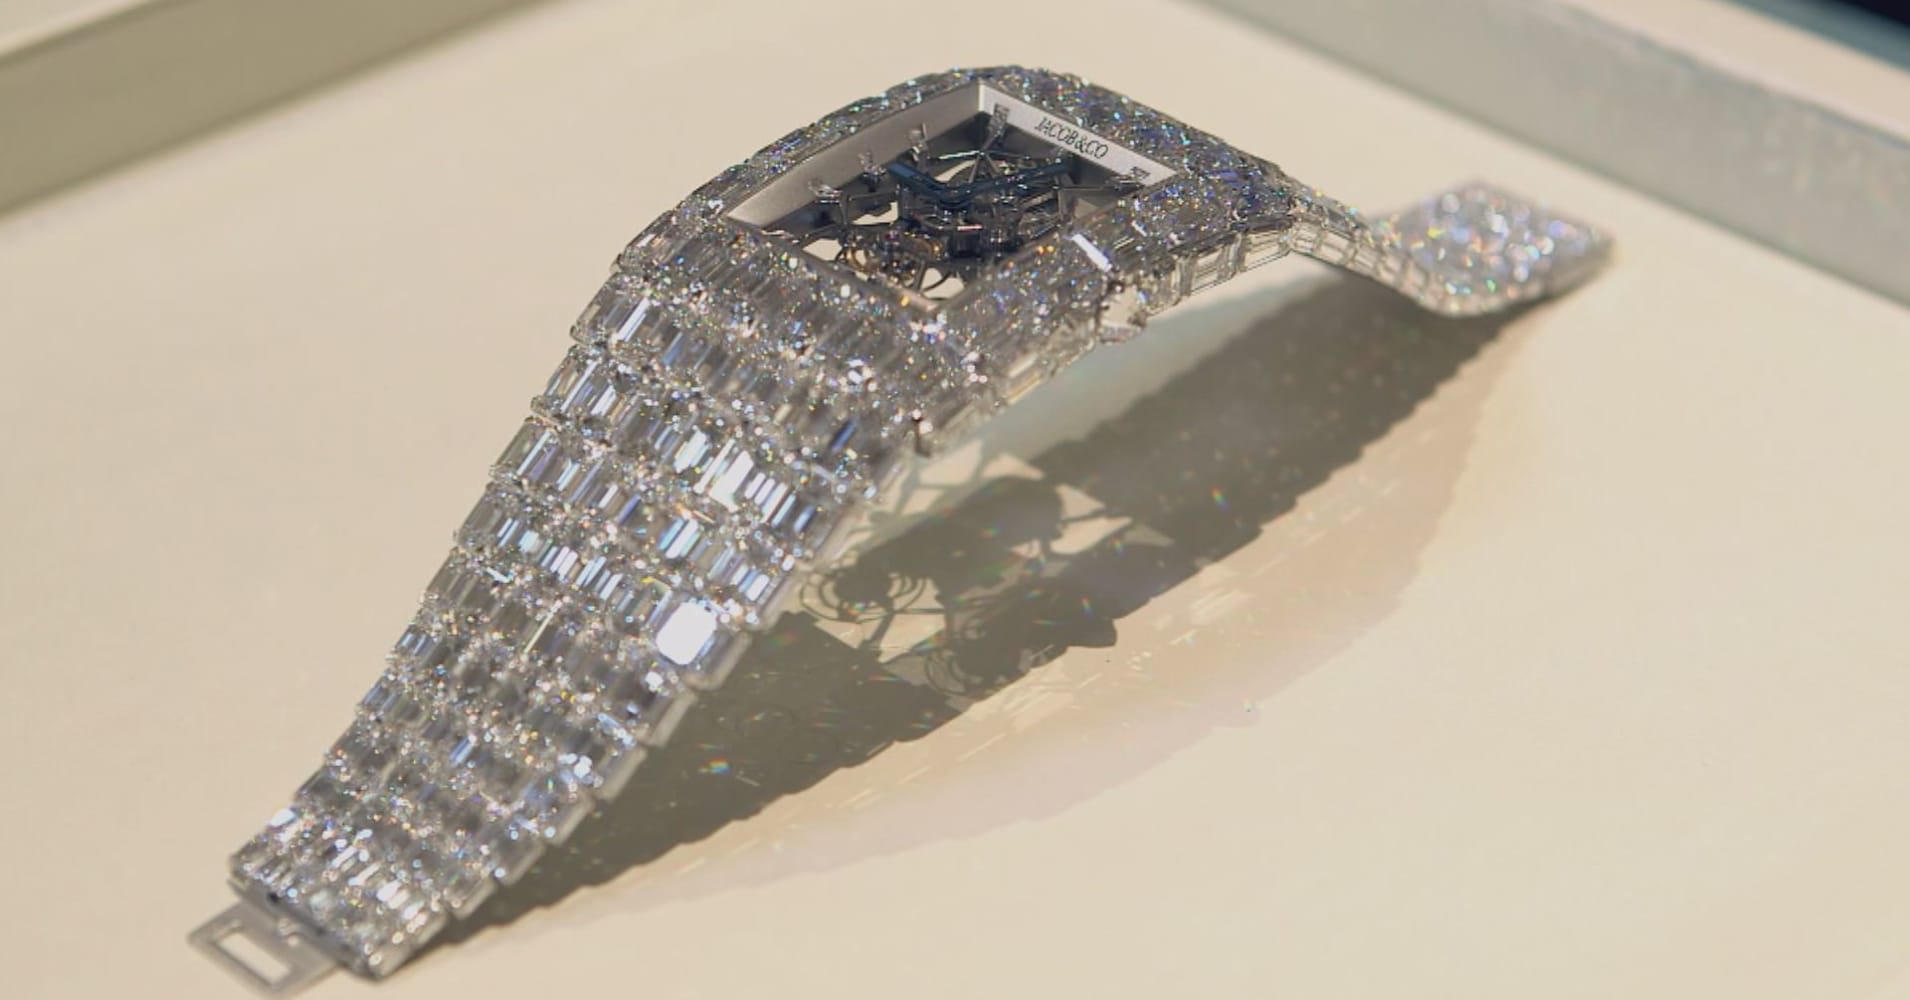 """The Billionaire"" wristwatch made by Jacob & Co is decked out in 260 carats of diamonds and comes with an $18 million price tag."